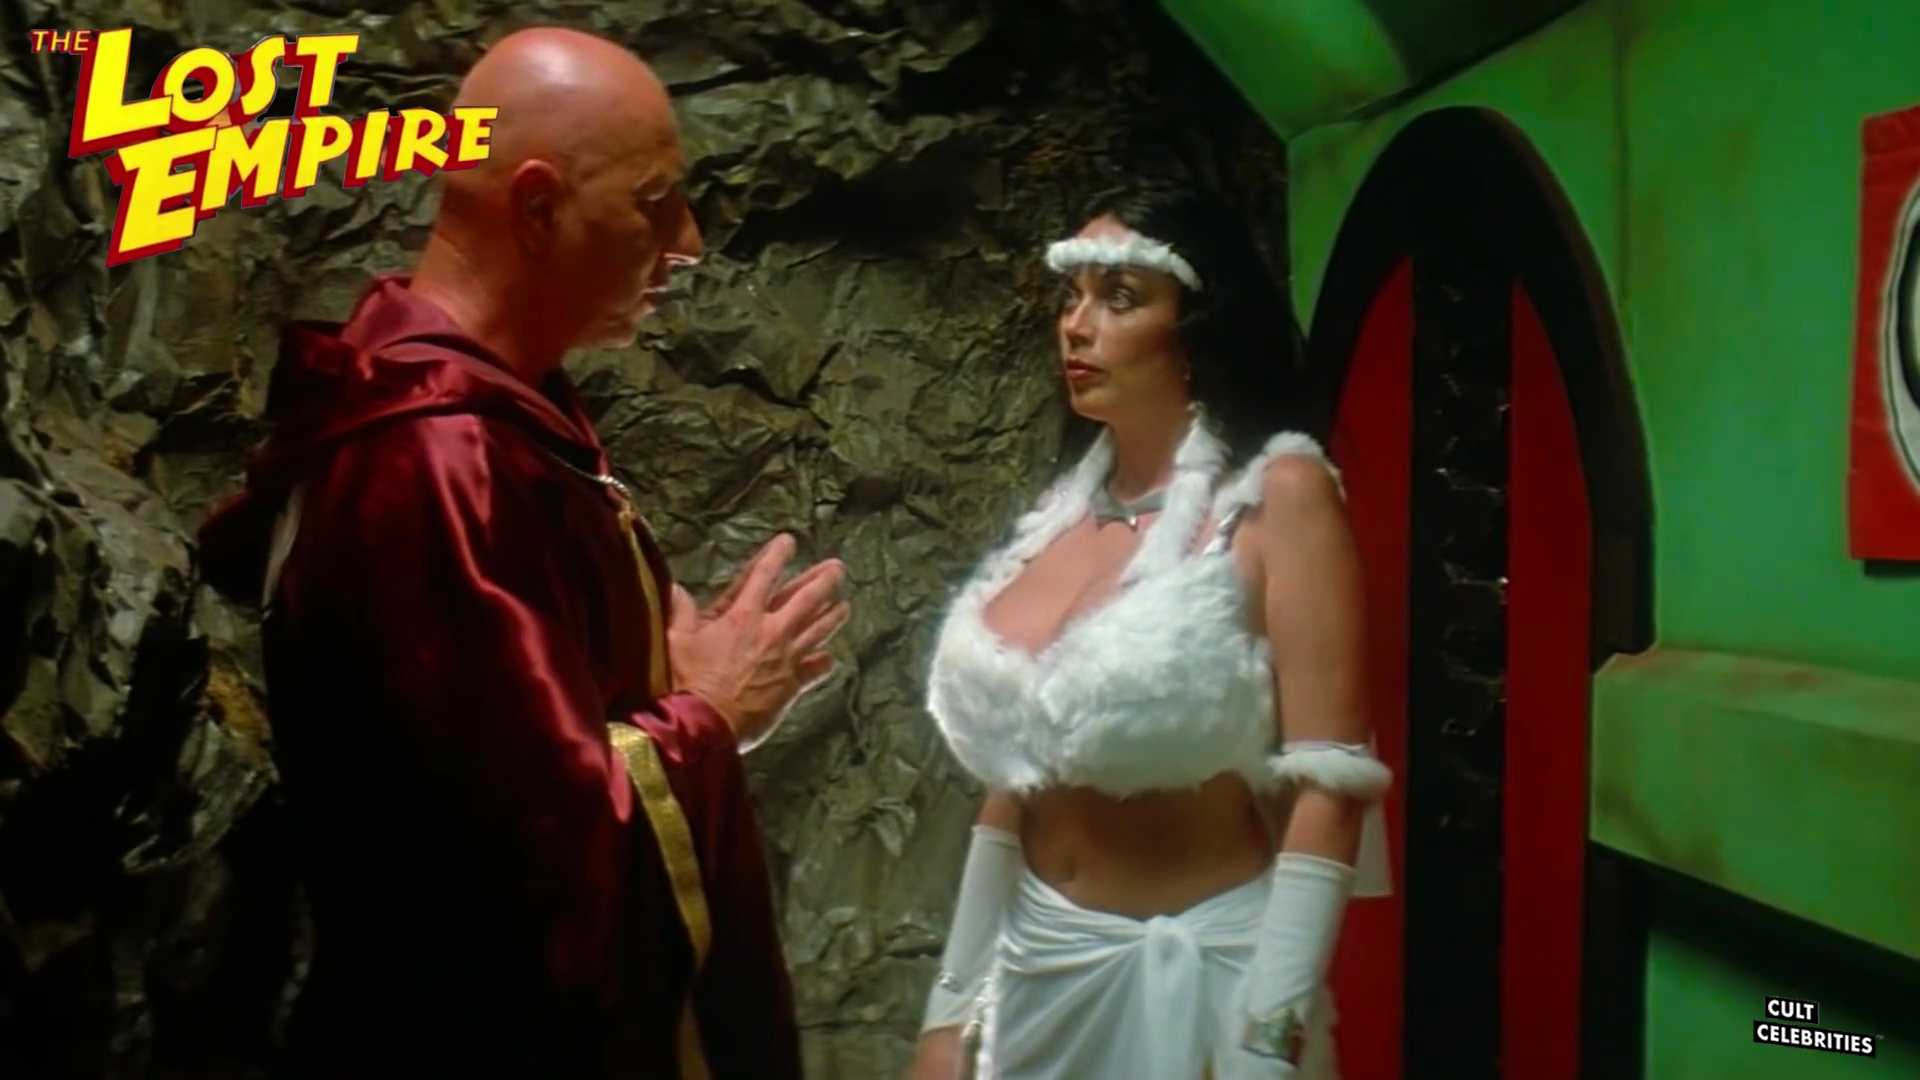 Raven De La Croix in The Lost Empire (1984)